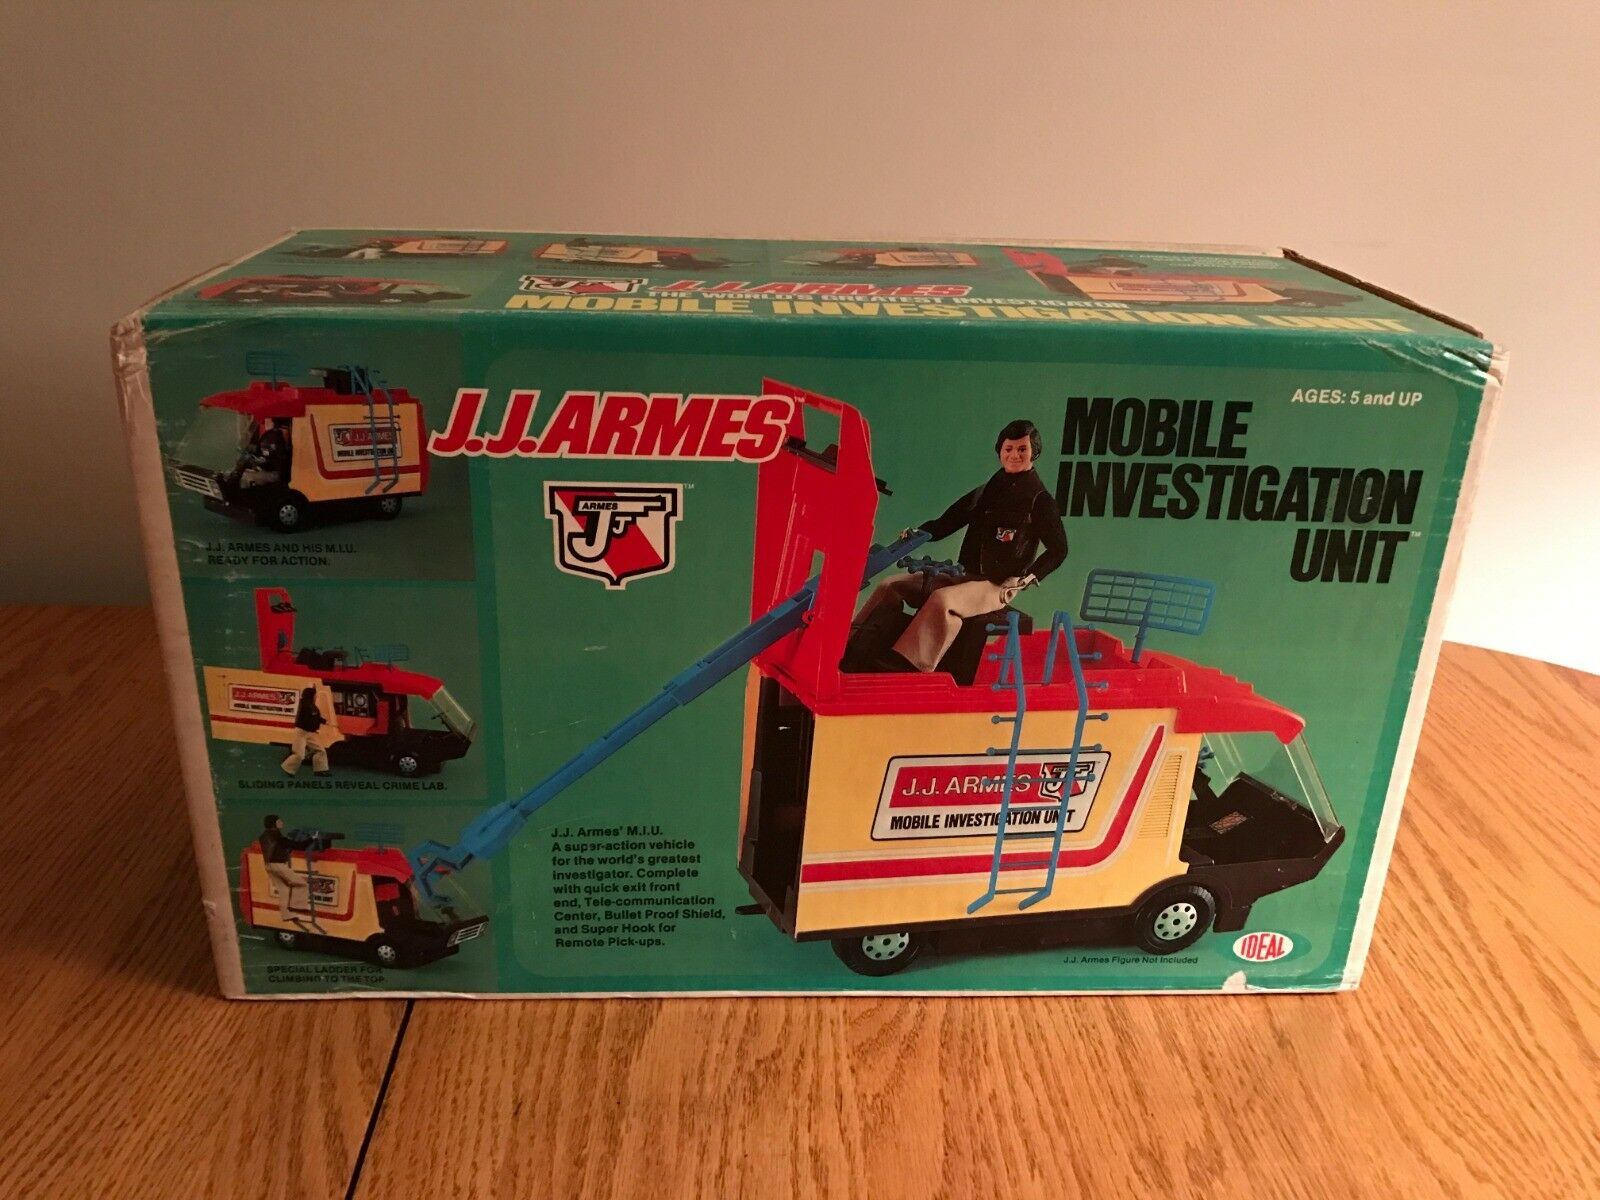 RARE VINTAGE 1976 IDEAL J.J. ARMES MOBILE INVESTIGATION UNIT VAN MIB NEW NRFB